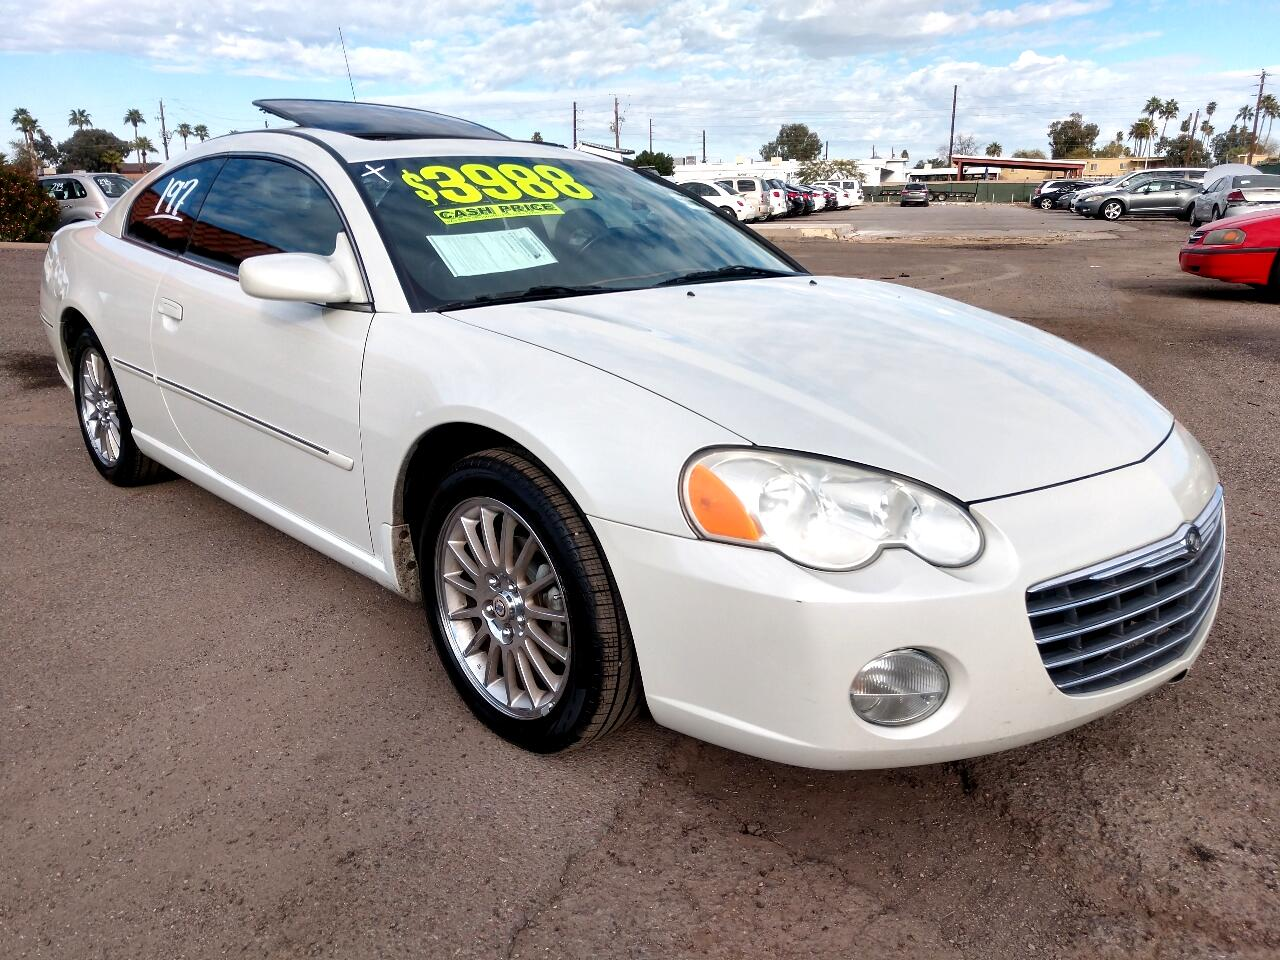 Chrysler Sebring Cpe LXi Coupe 2003